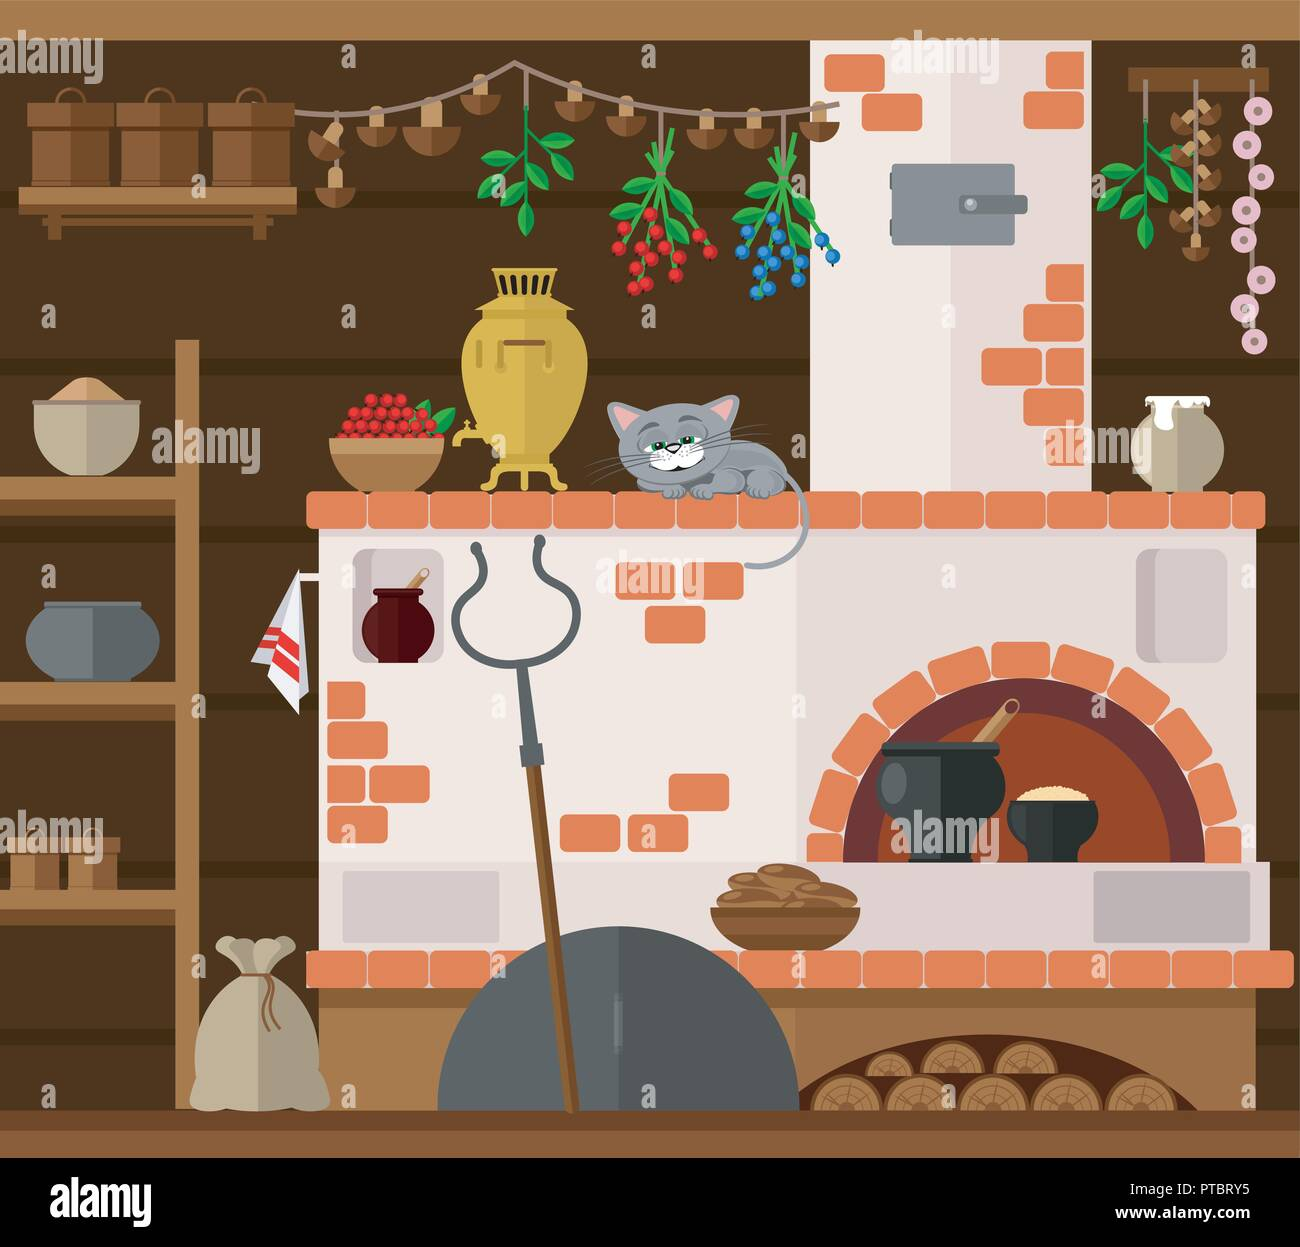 Interior of russian village house with Russian stove. Traditional farm house kitchen. Happy cat dozing on a chair. - Stock Vector